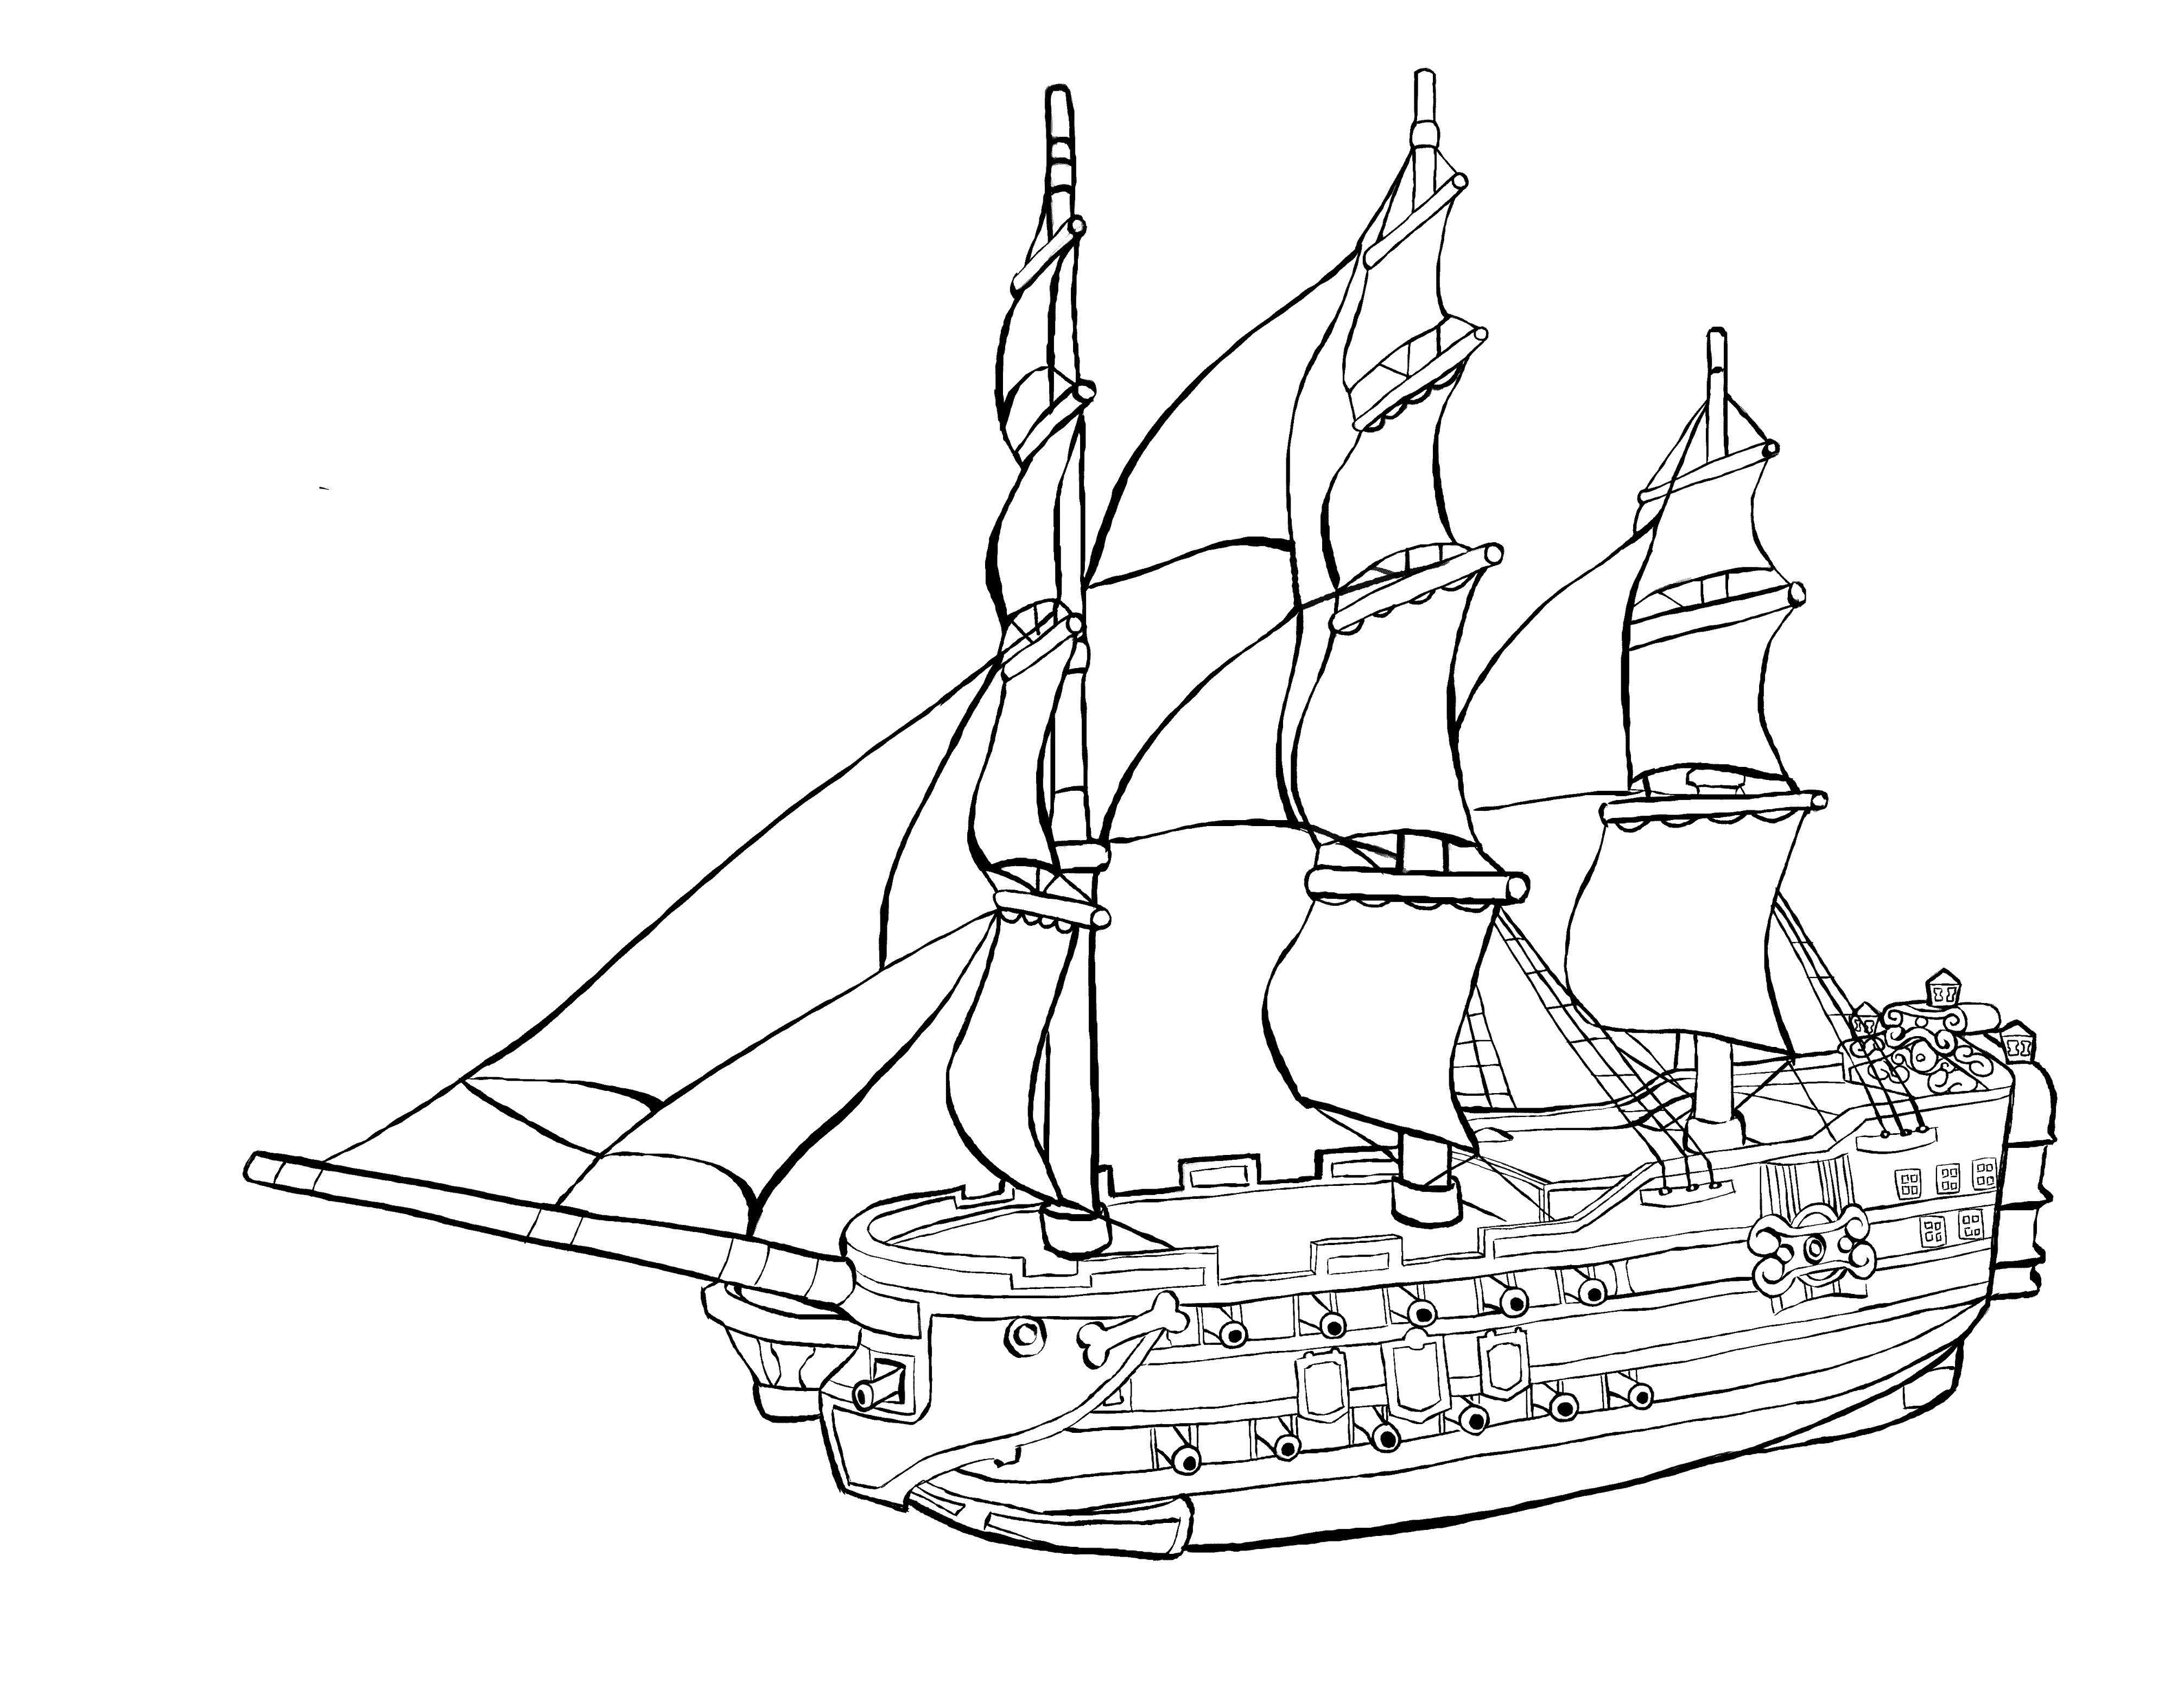 Boats Pirate Ship Coloring Pages For Kids Coloring Pages For Kids Desenho [ 3147 x 4000 Pixel ]